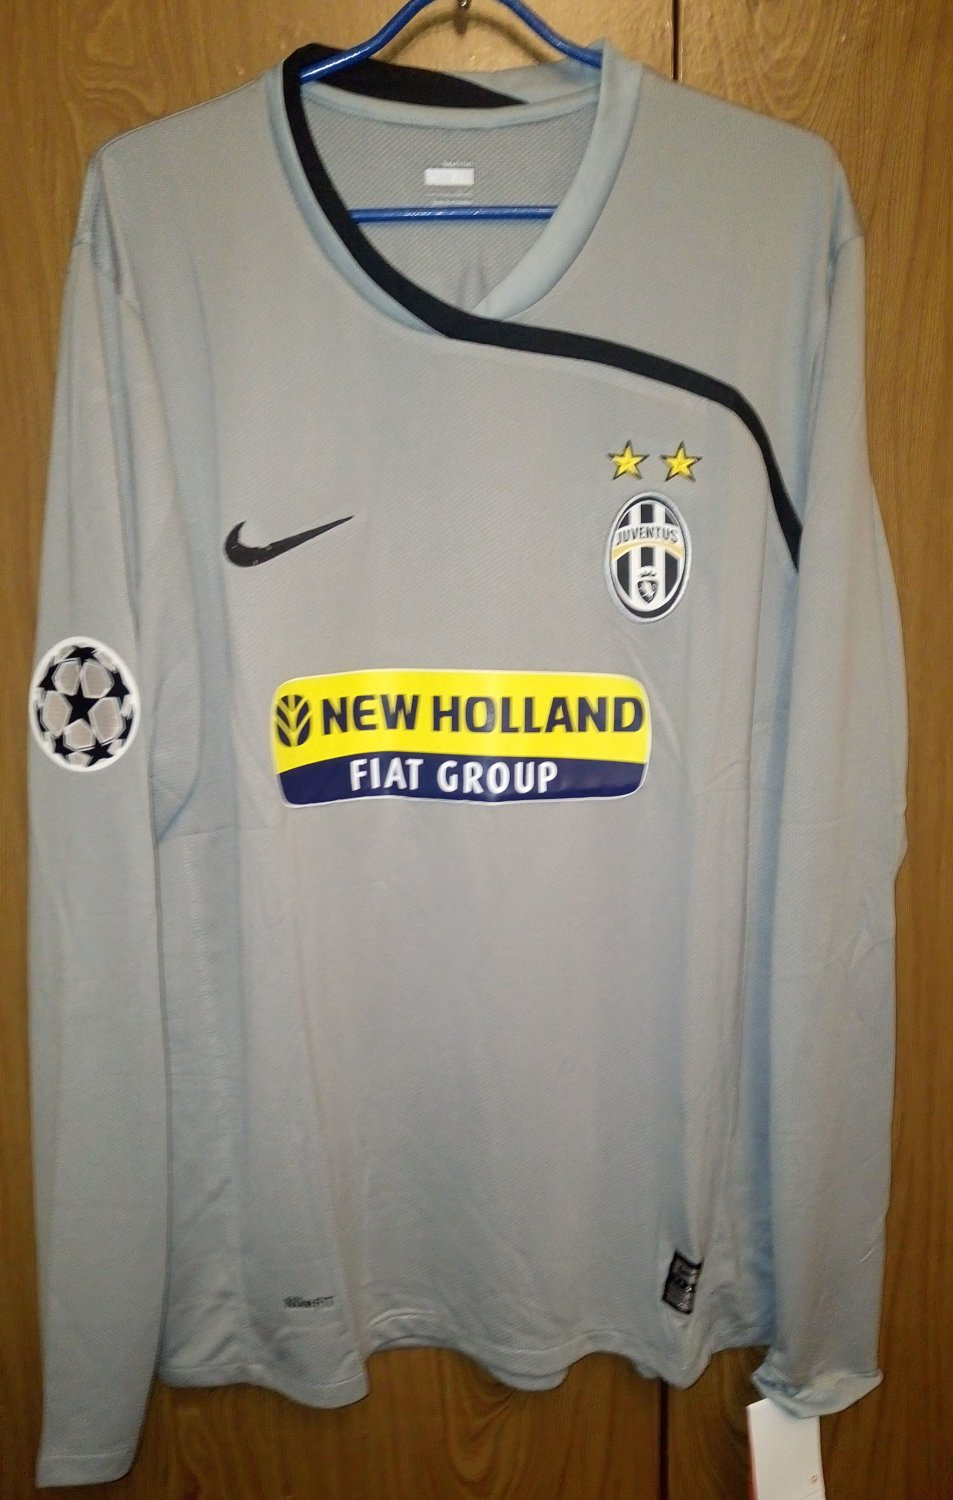 separation shoes 1f53e f1d86 Juventus Goalkeeper maglia di calcio 2008 - 2009. Sponsored ...